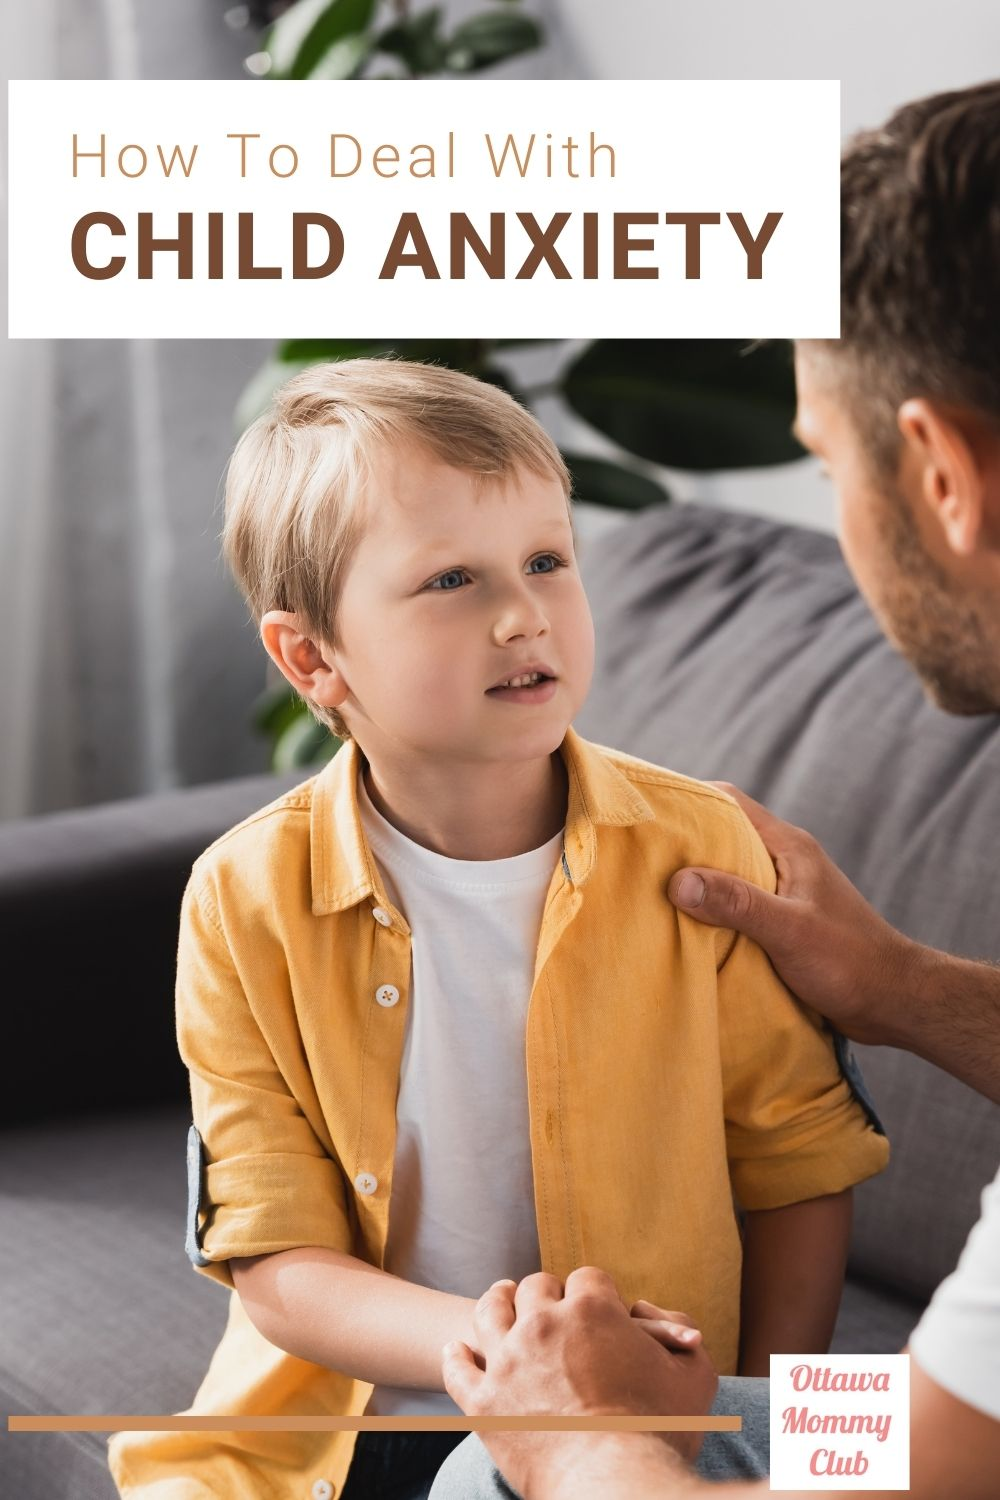 How to Deal with Child Anxiety